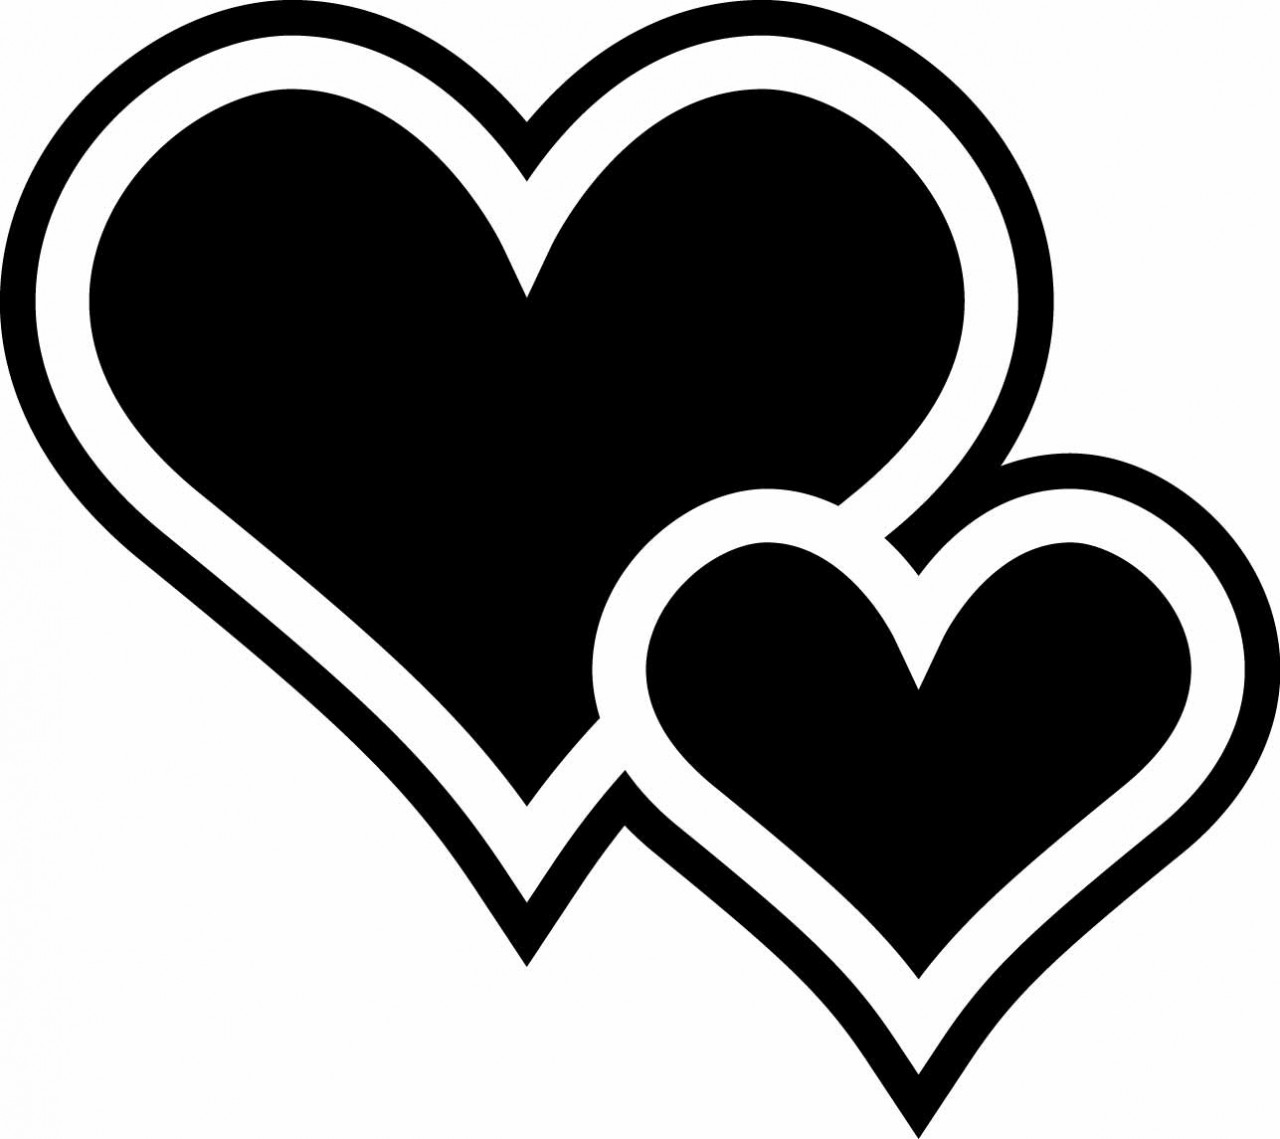 Two Hearts Chalkboard - Decallage - ClipArt Best - ClipArt ... (1280 x 1139 Pixel)